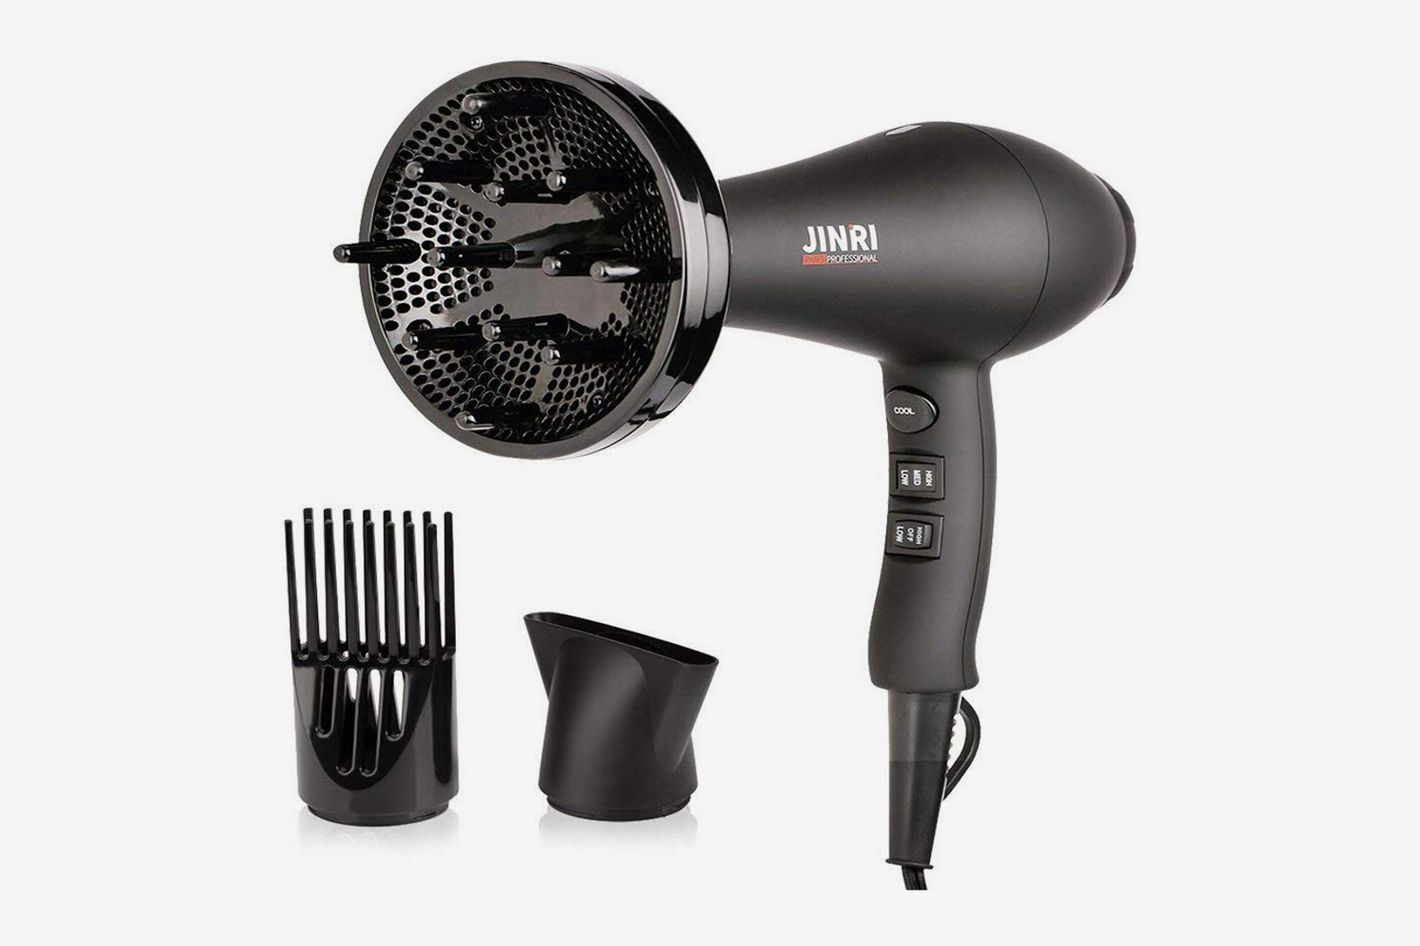 JINRI 1875W Professional Salon Hair Dryer